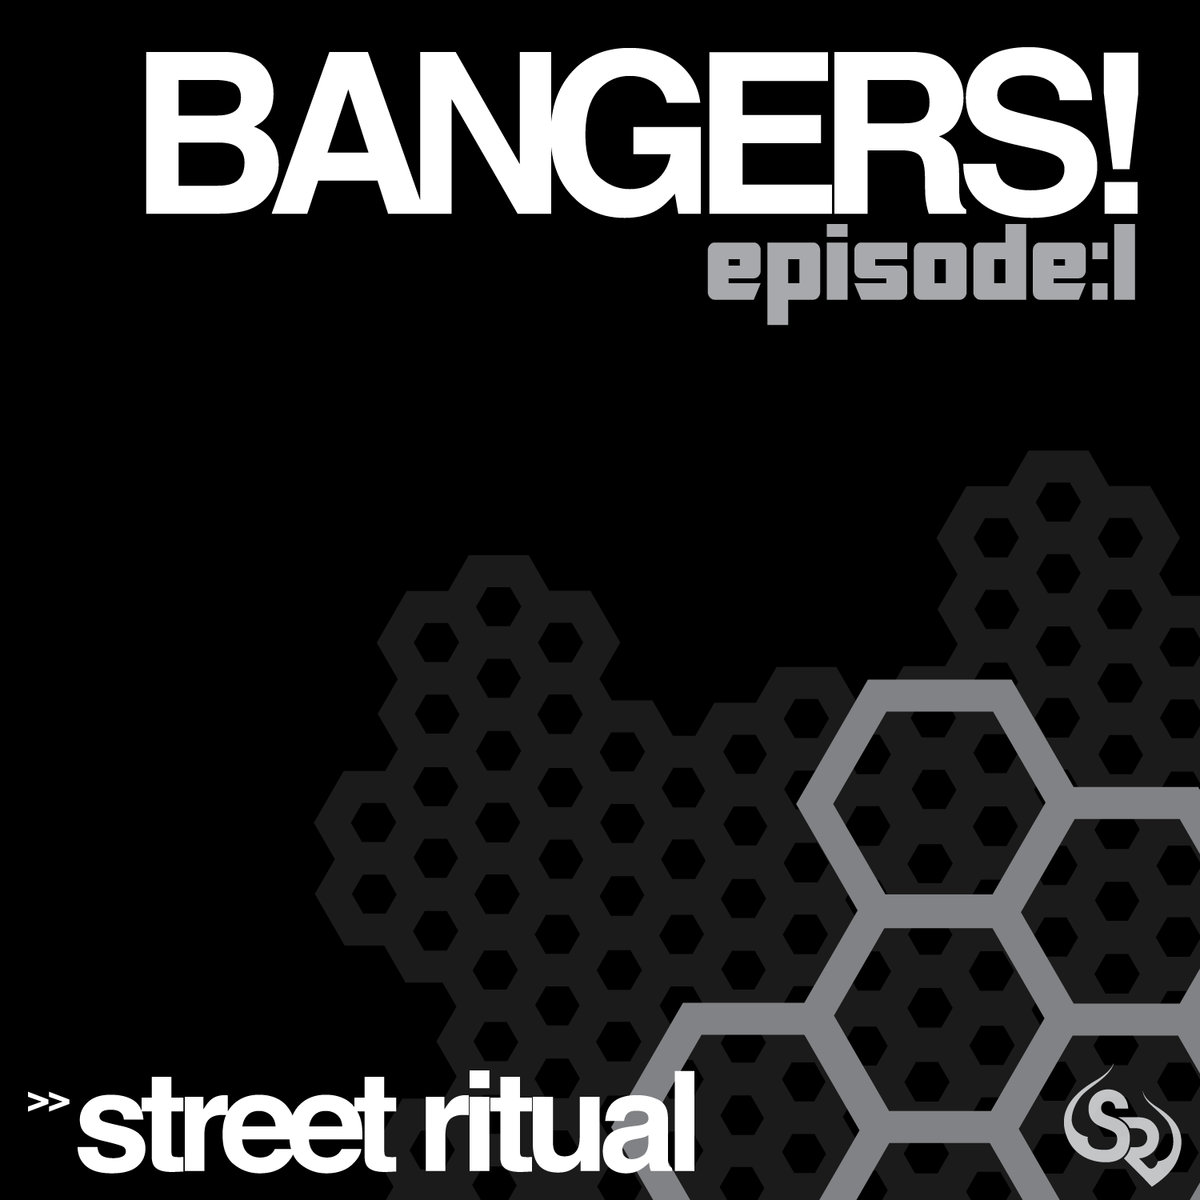 Various Artists - Bangers! Episode:1 (artwork)